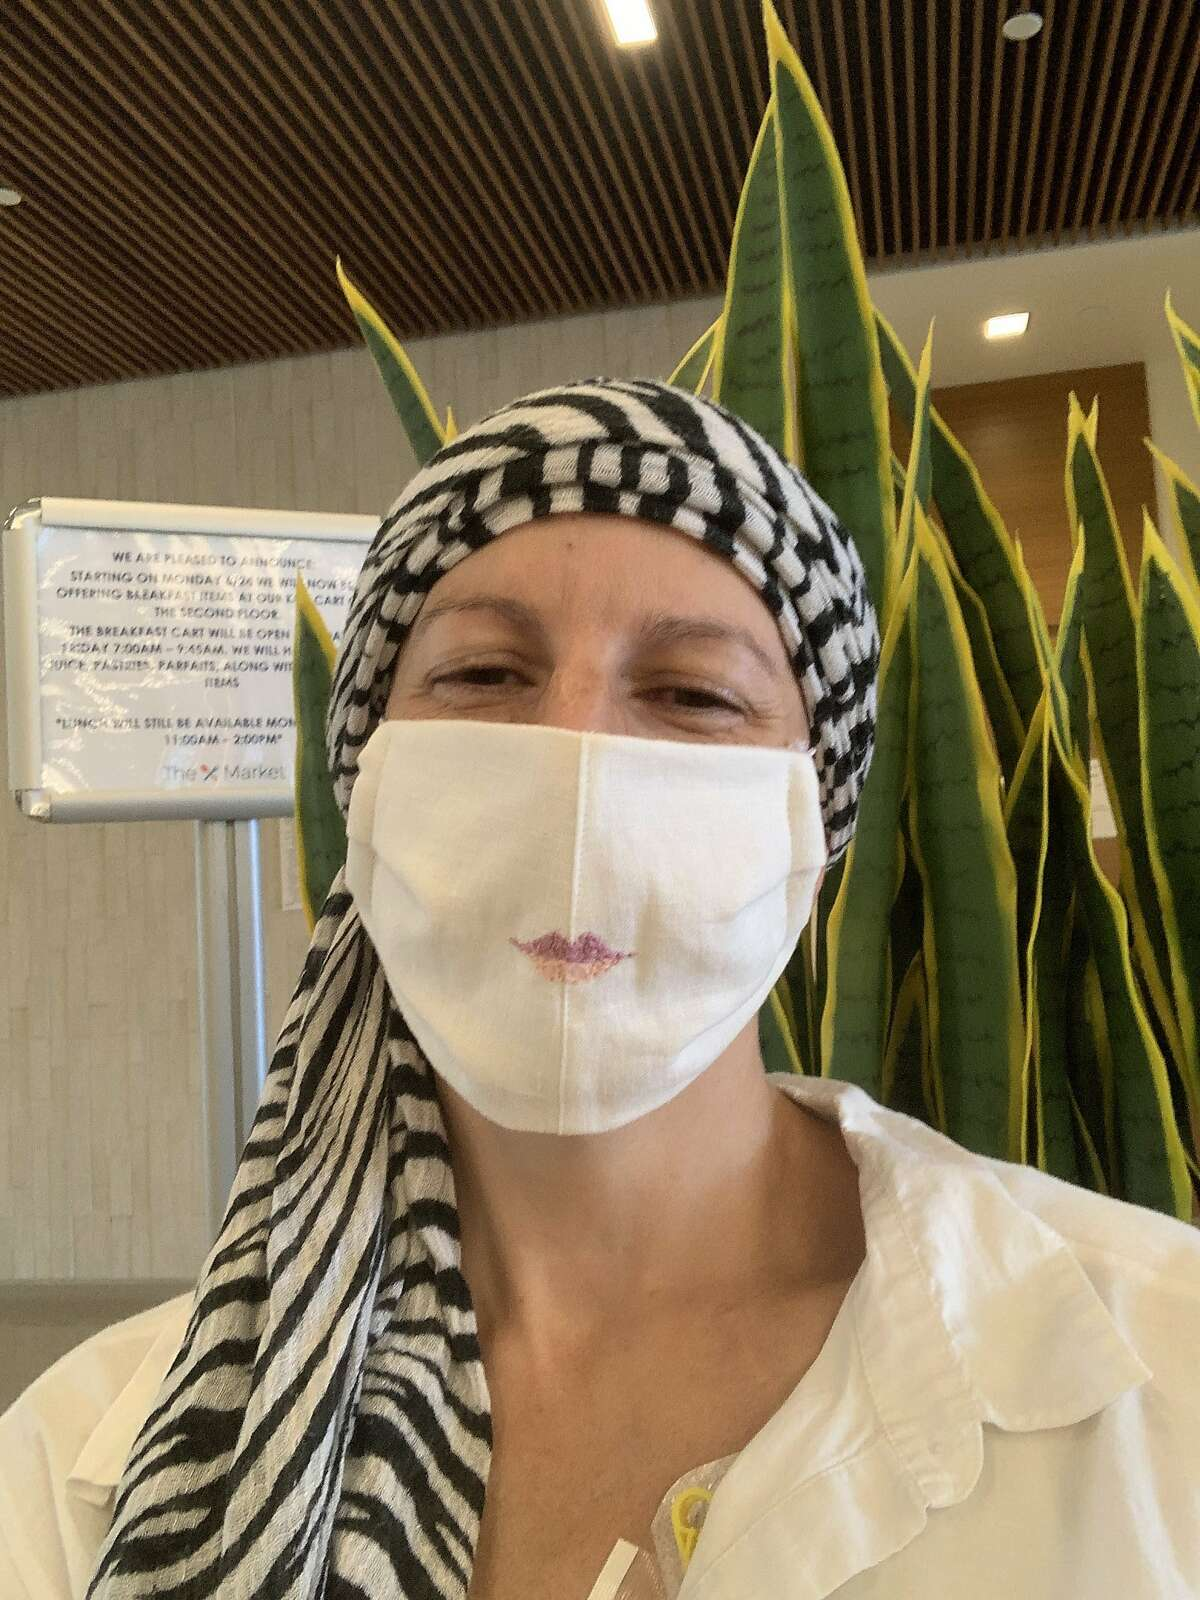 """""""My Chemo-Covid look...a mask to keep me safe, a headscarf to keep my bald head warm. This was taken in the lobby of my oncologists office at UCSD, waiting for my chemotherapy infusion appointment to start."""" Kimberly, San Diego, May 22, 2020"""